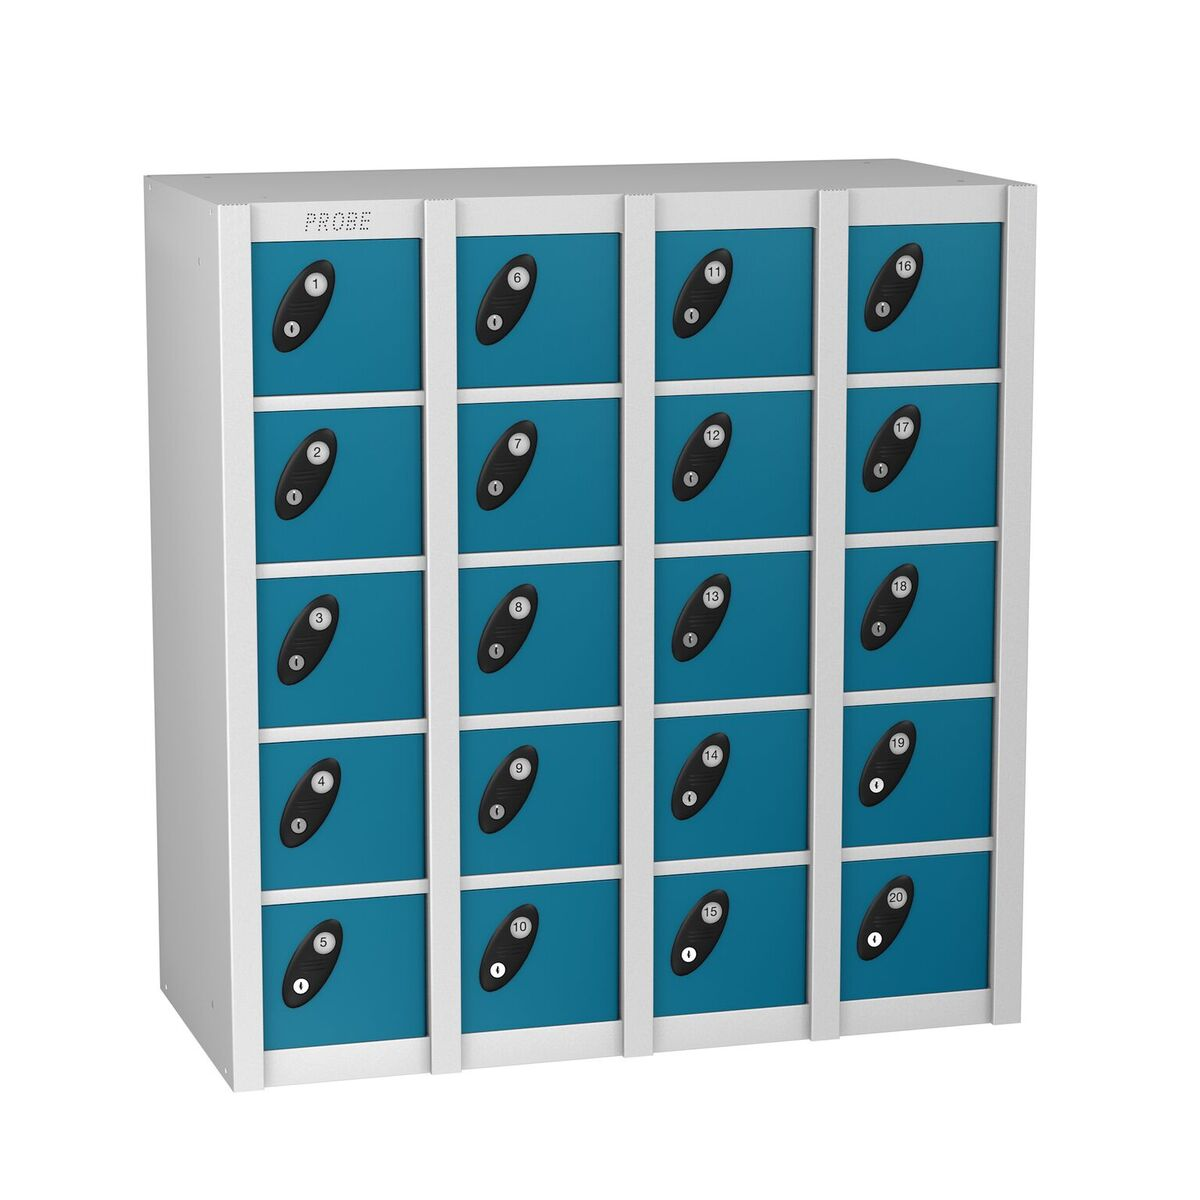 Personal Effect Lockers are ideal for storage of keys, wallets, purses and mobile phones.